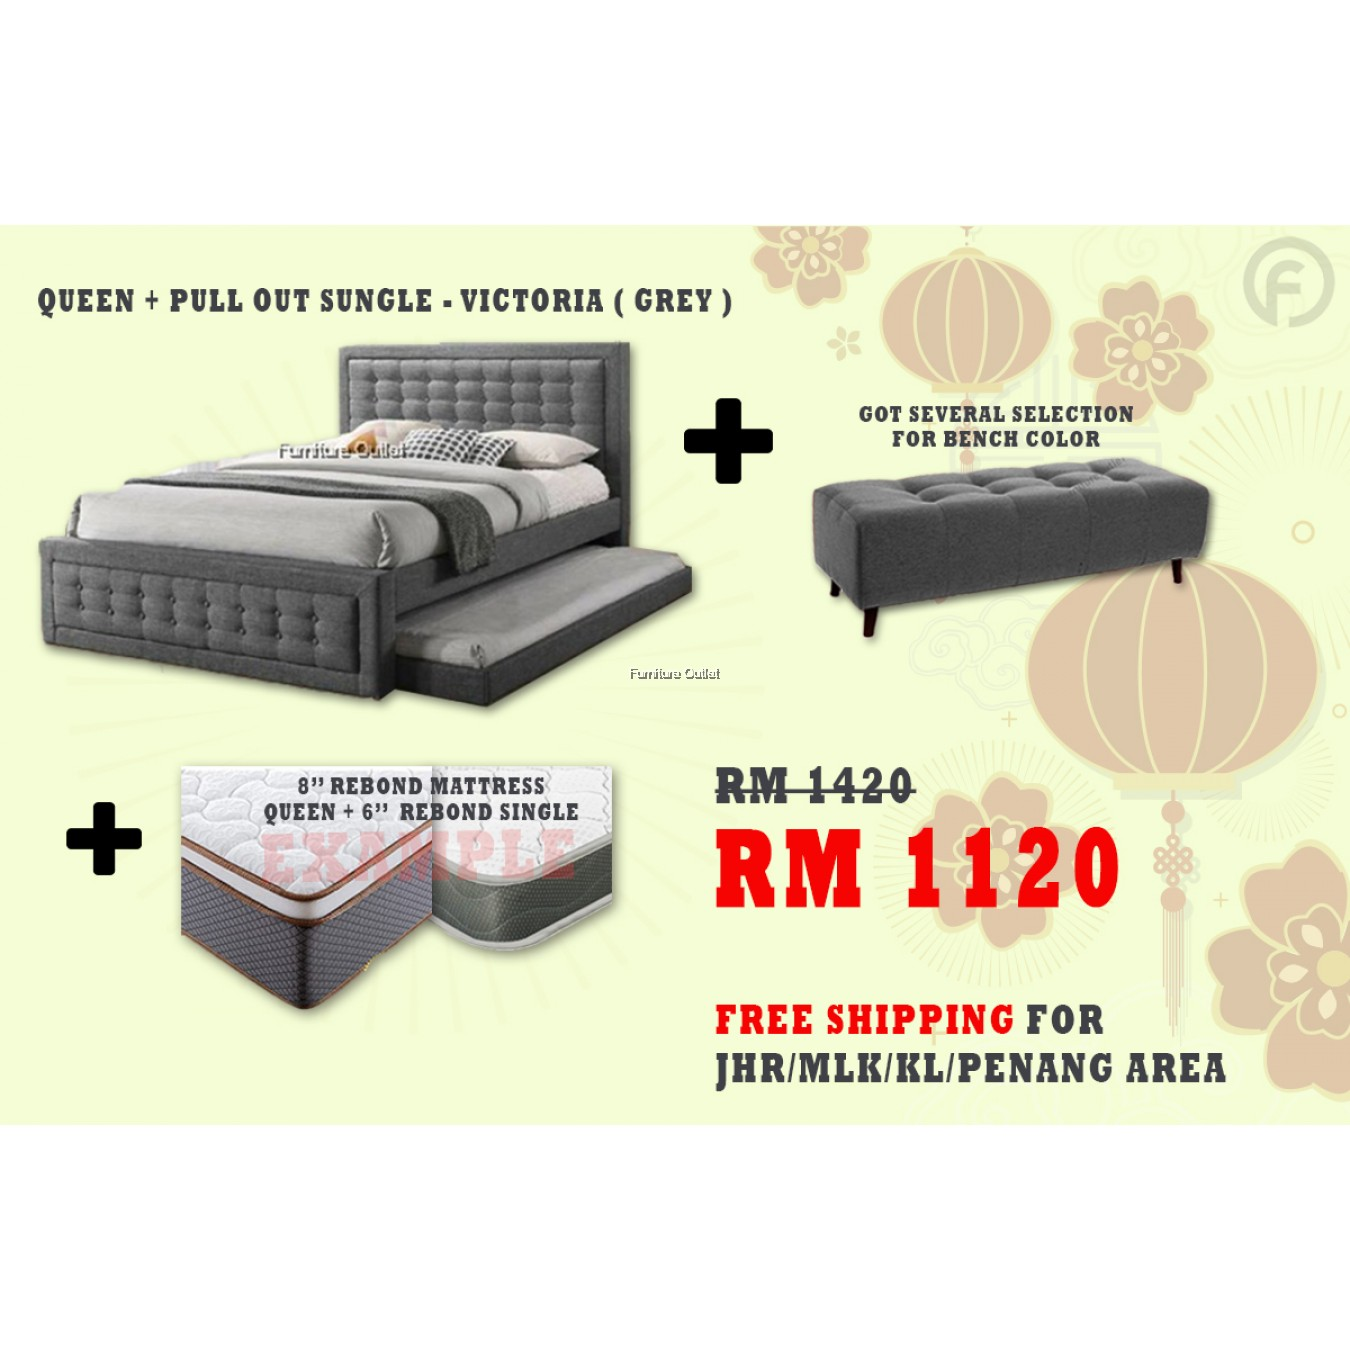 [ FREE SHIPPING ] VICTORIA QUEEN + PULLOUT BED + BENCH + 6'' SINGLE 8'' QUEEN MATTRESS